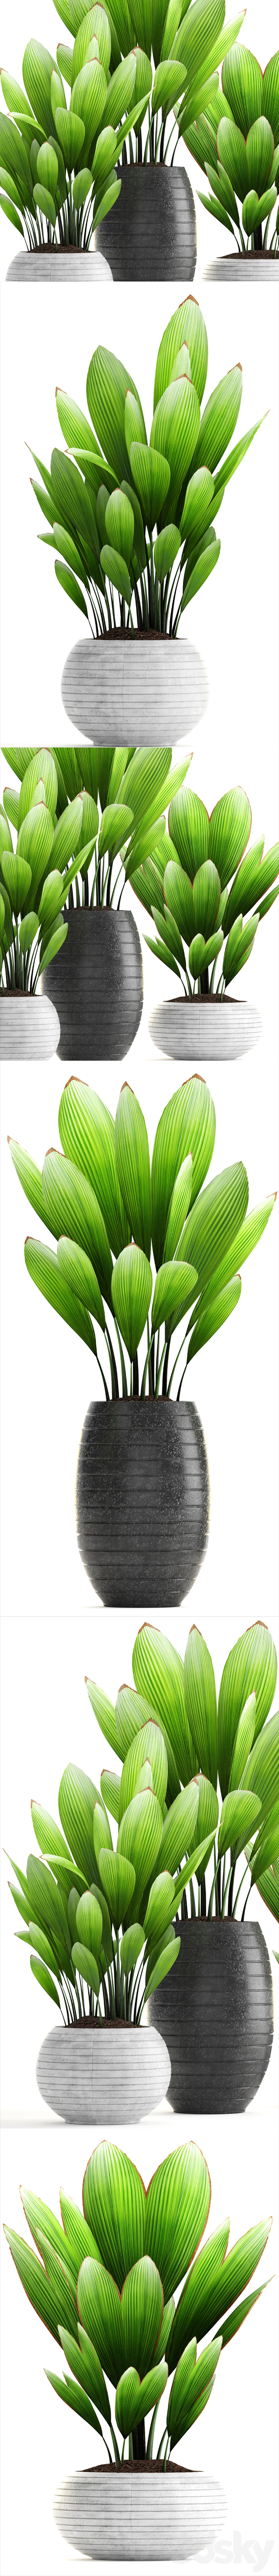 Collection of plants 139. Palm Grass